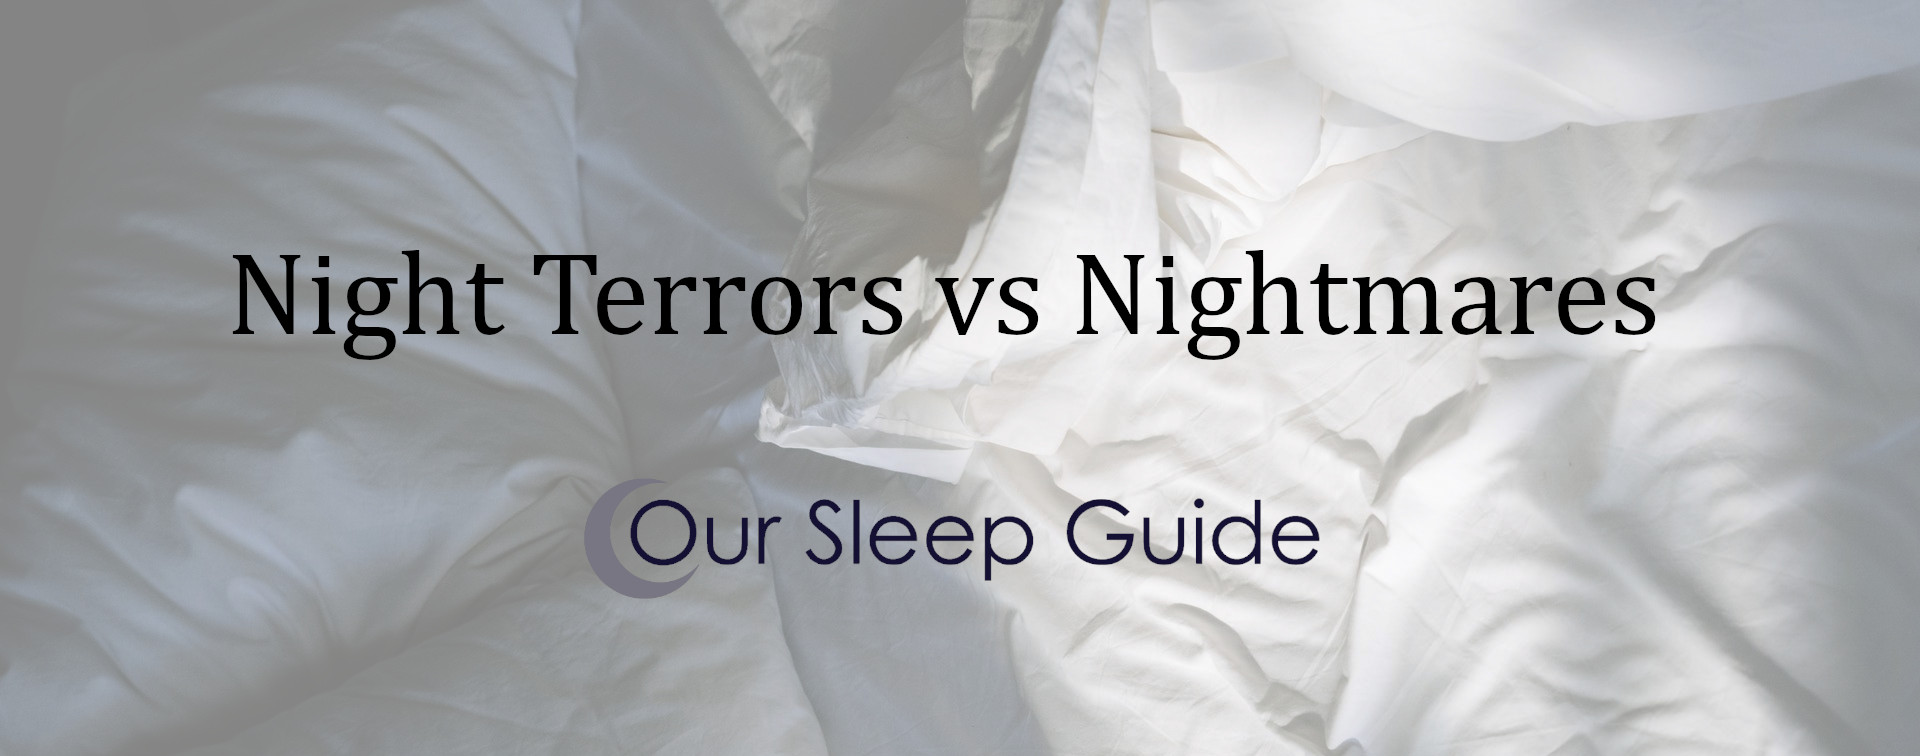 night terrors and nightmare our sleep guide